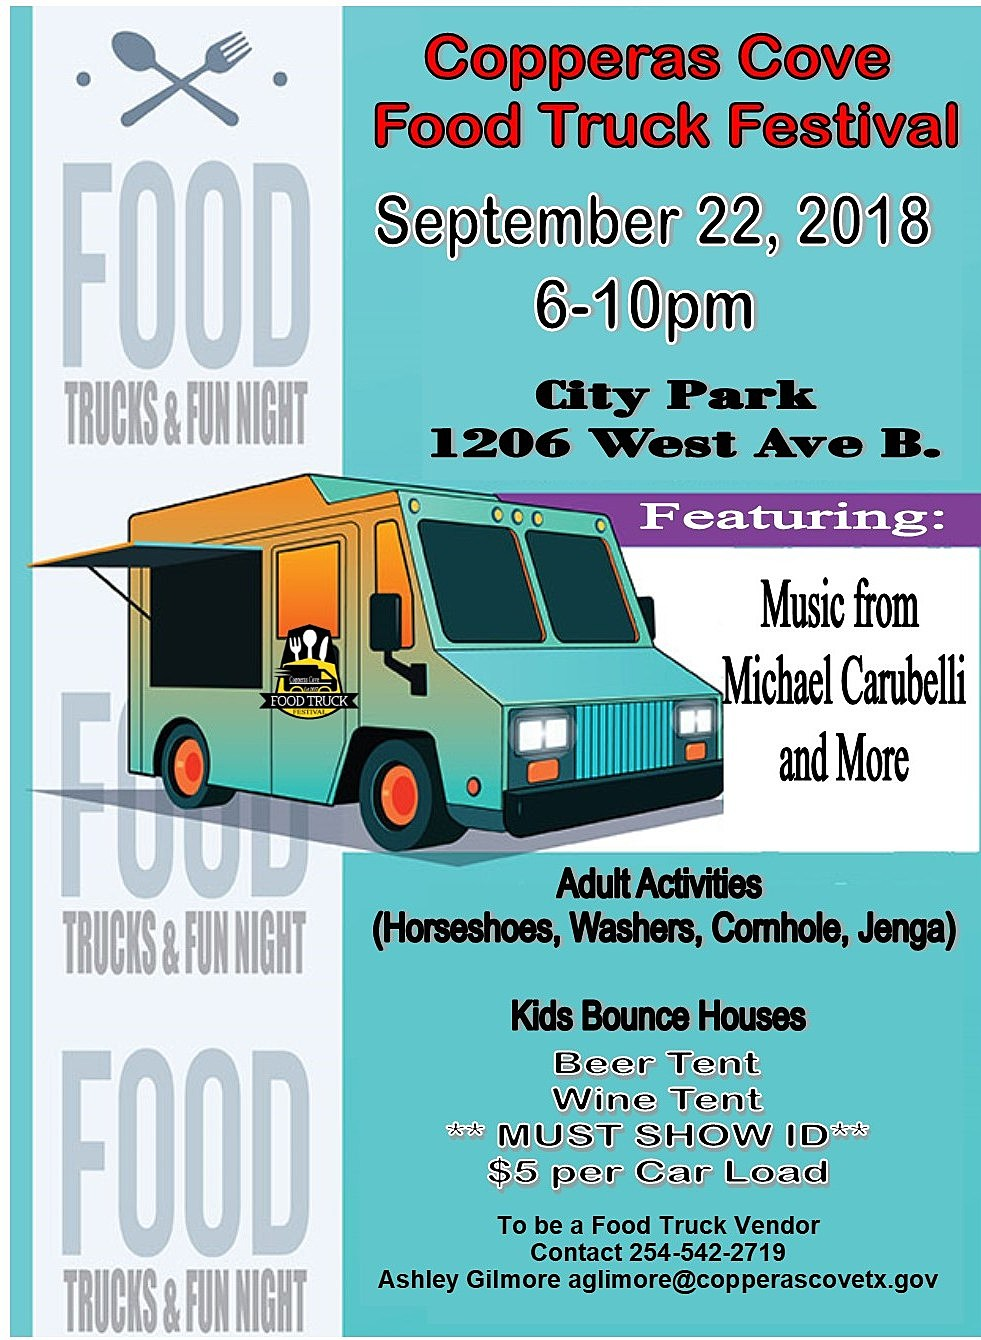 Copperas Cove 2018 Food Truck Festival